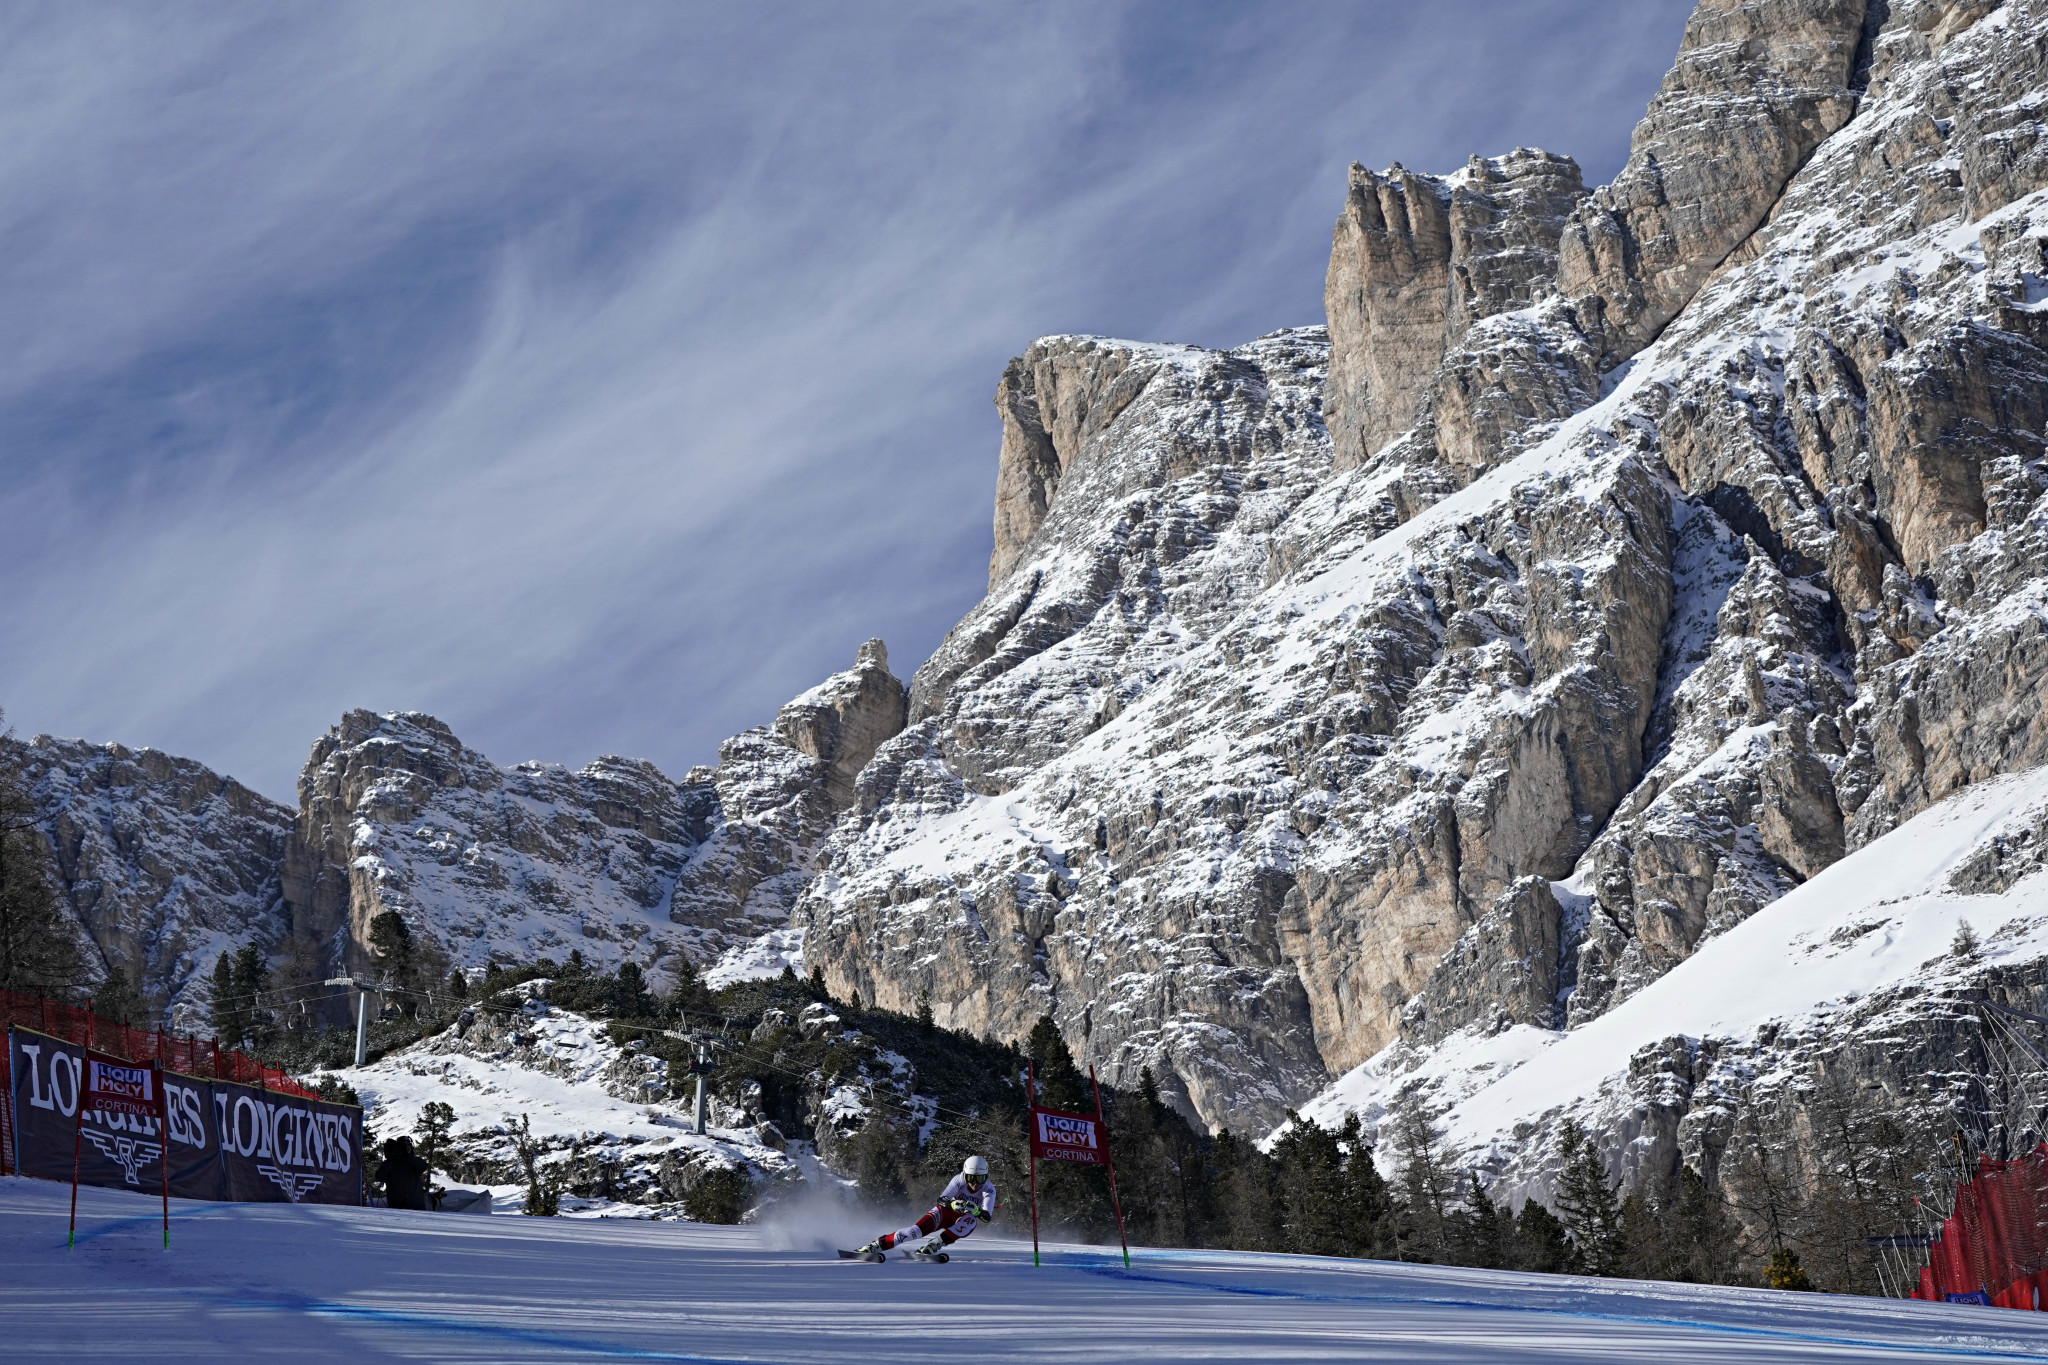 The first phase of the project will connect Cortina d'Ampezzo to the Cinque Torri area through Socrepes and Pocol ©Getty Images